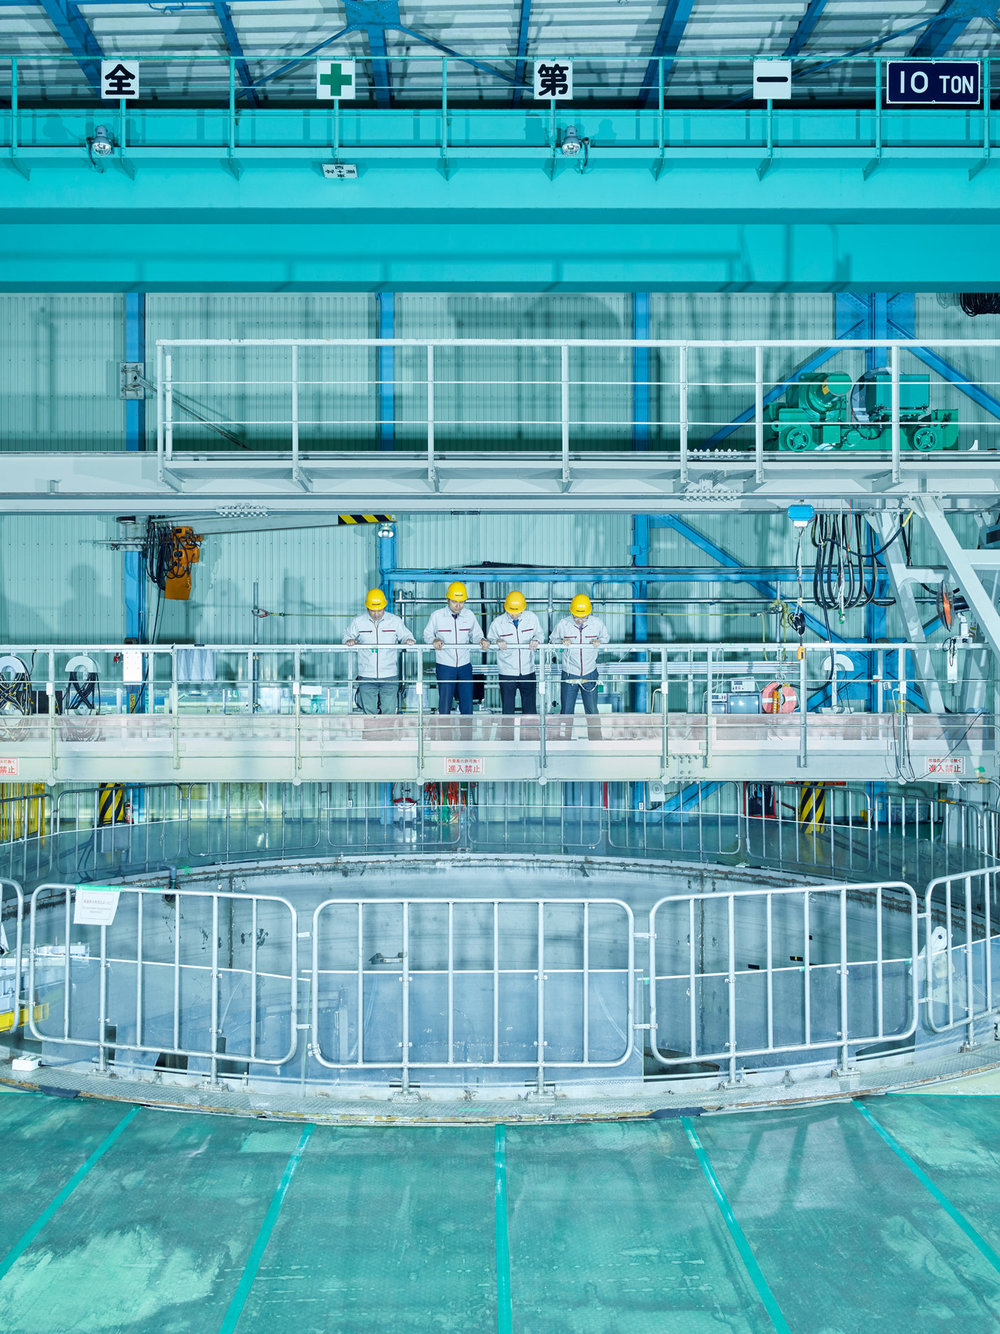 Toshiba's Nuclear Reactor Cleanup Research Facility, Kawasaki, Japan, 2017